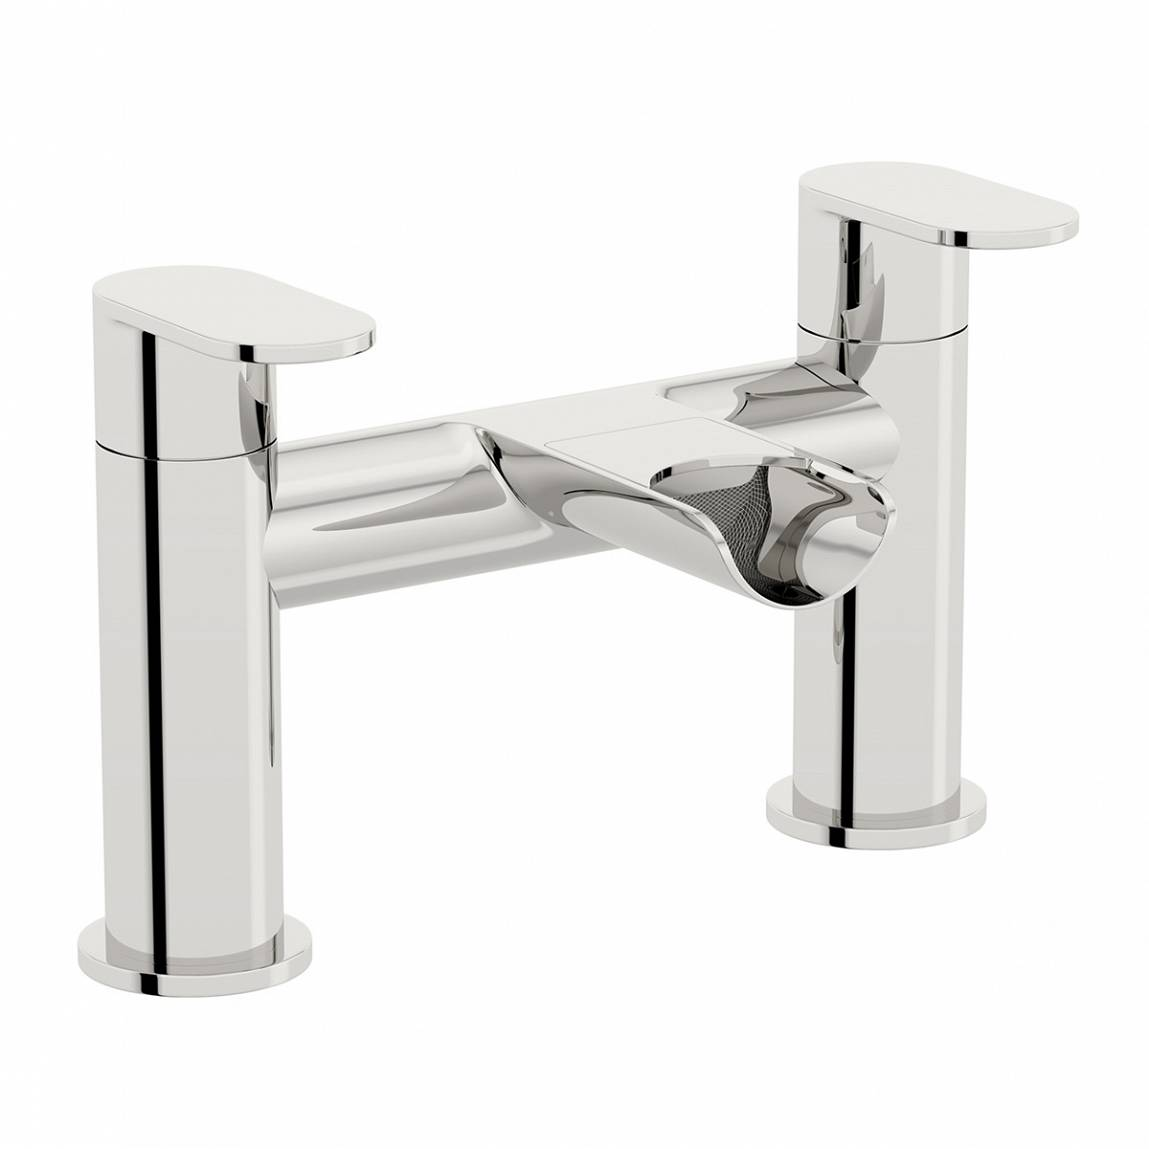 Image of Keswick Waterfall Bath Mixer